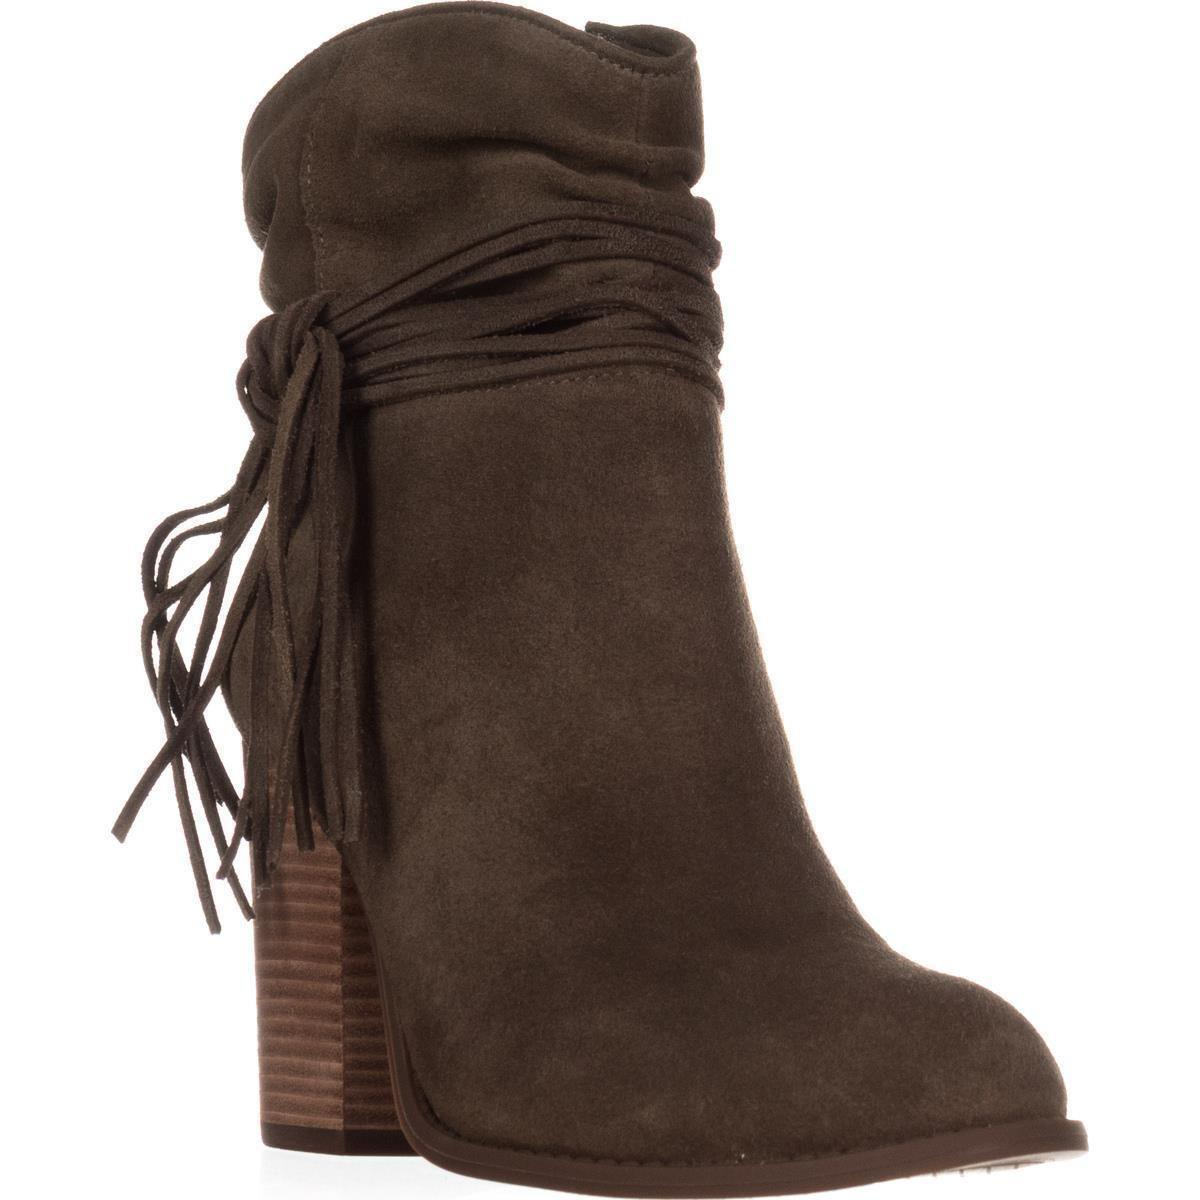 6cc896760863 Lyst - Jessica Simpson Sesley Wrapped Slouch Ankle Booties